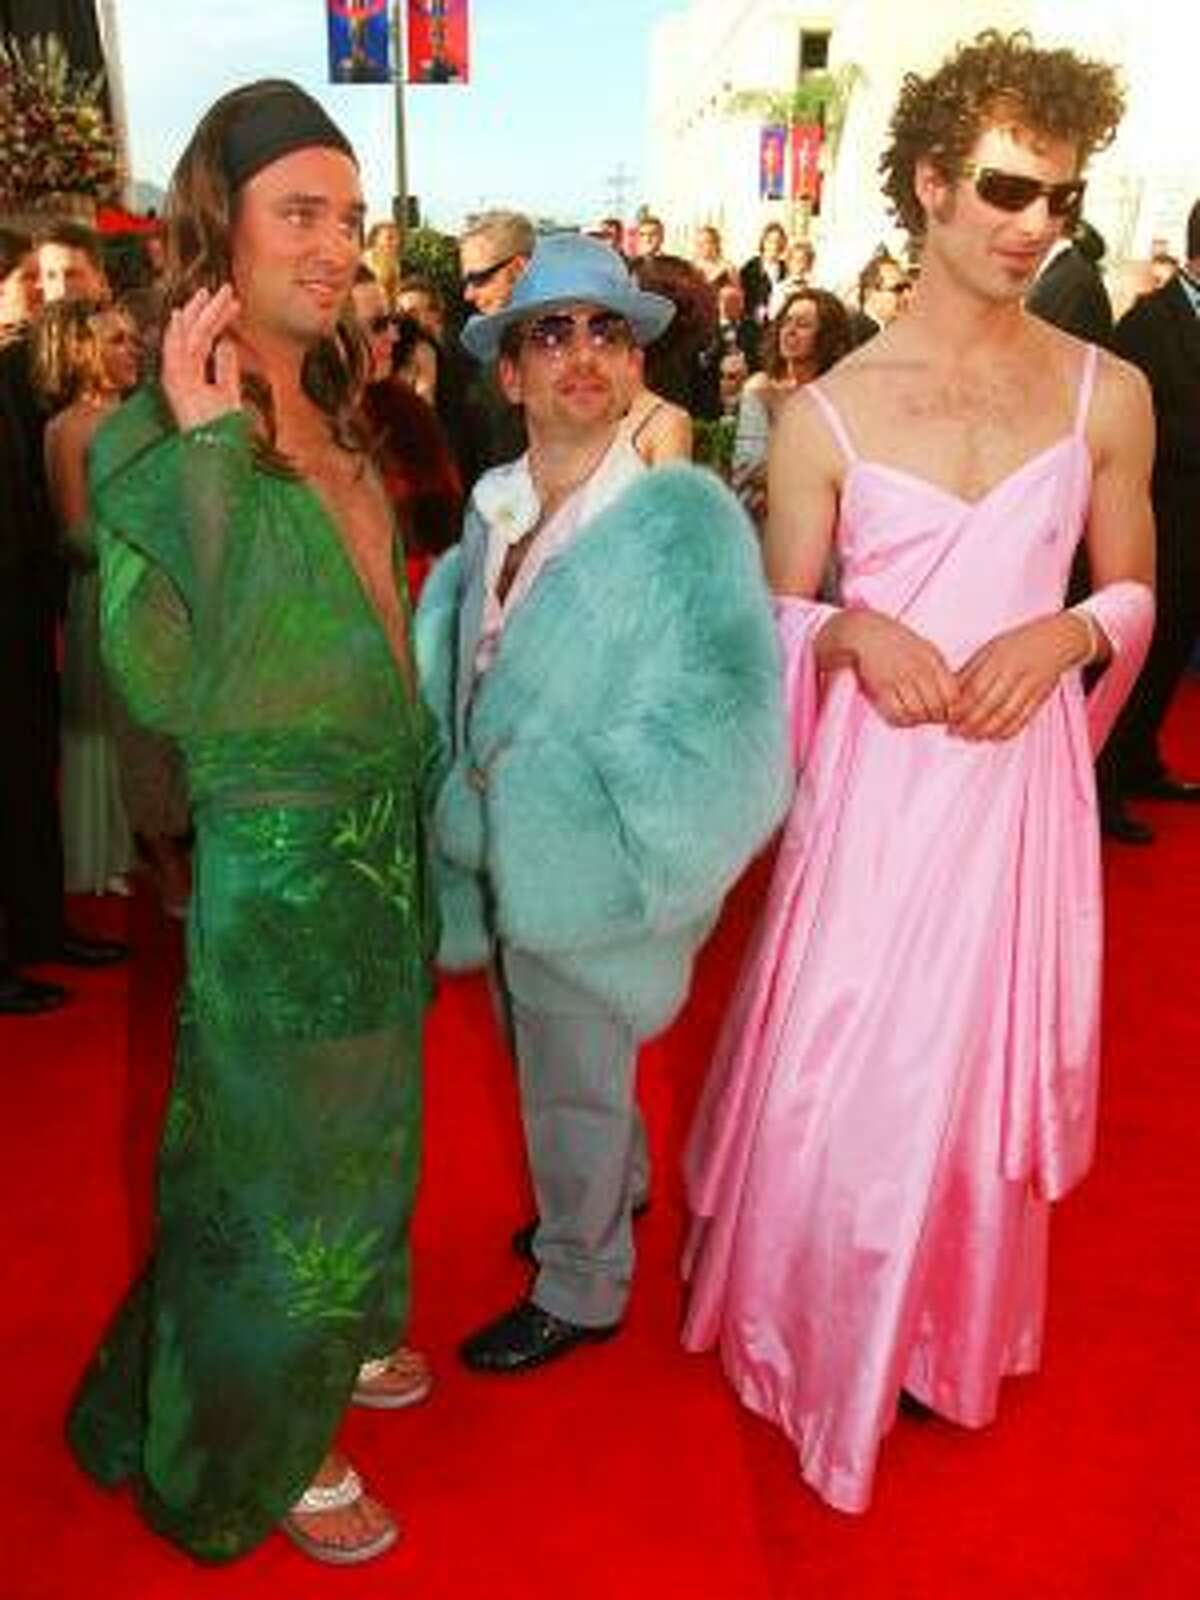 Highly entertaining: Fashion was on the minds of the South Park: Bigger, Longer and Uncut gang - Trey Parker, left (in a Jennifer Lopez-style dress), Marc Shaiman (in blue fur) and Matt Stone, right (in Gwyneth Paltrow pink) -- in 2000. For most celebrities, however, the best dressed stars are the ones who are true to their own sense of style.